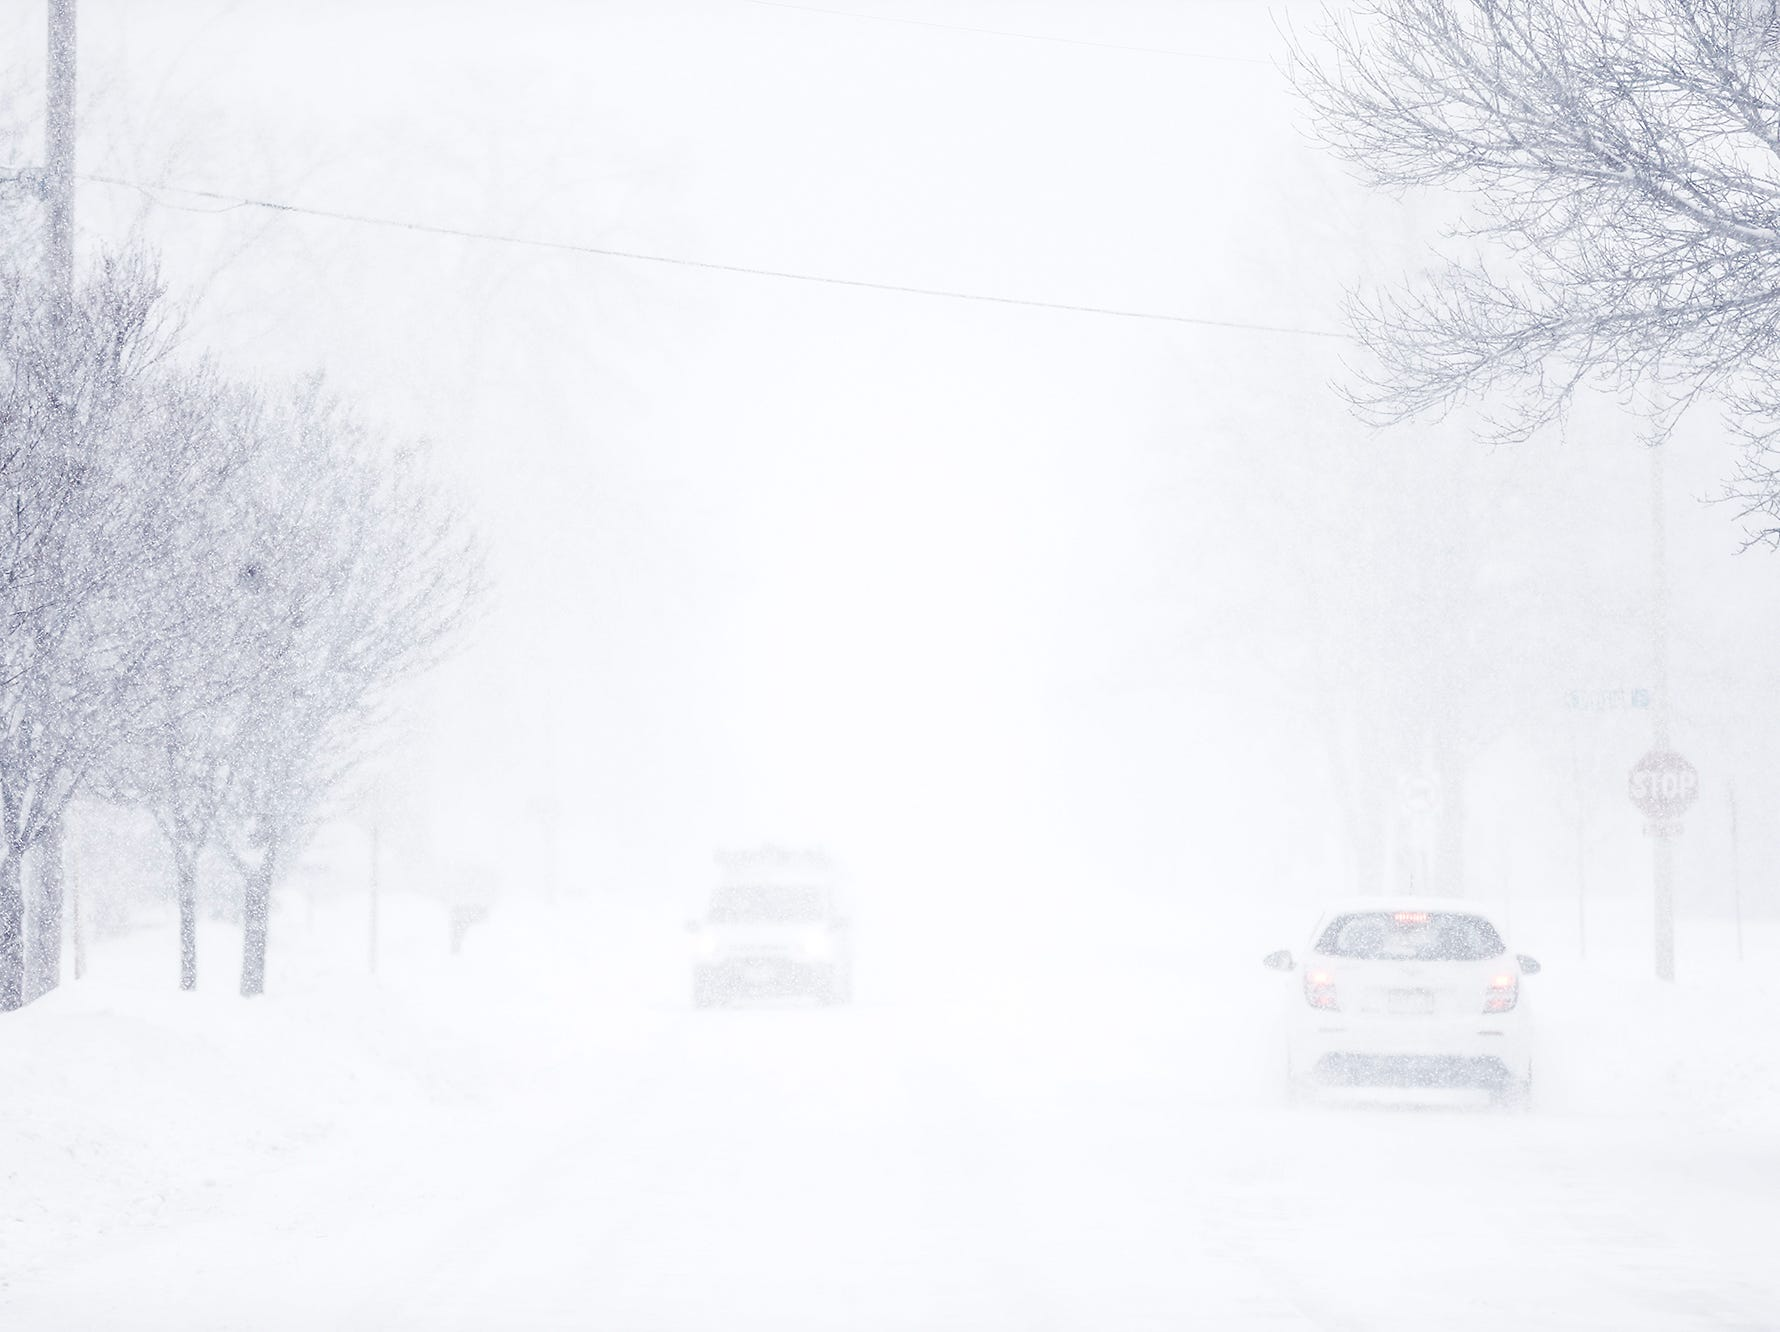 Visibility fell to less than a two blocks during a winter storm Tuesday, Feb. 12, 2019 in Fond du Lac, Wis. A winter storm warning was issued for the area.